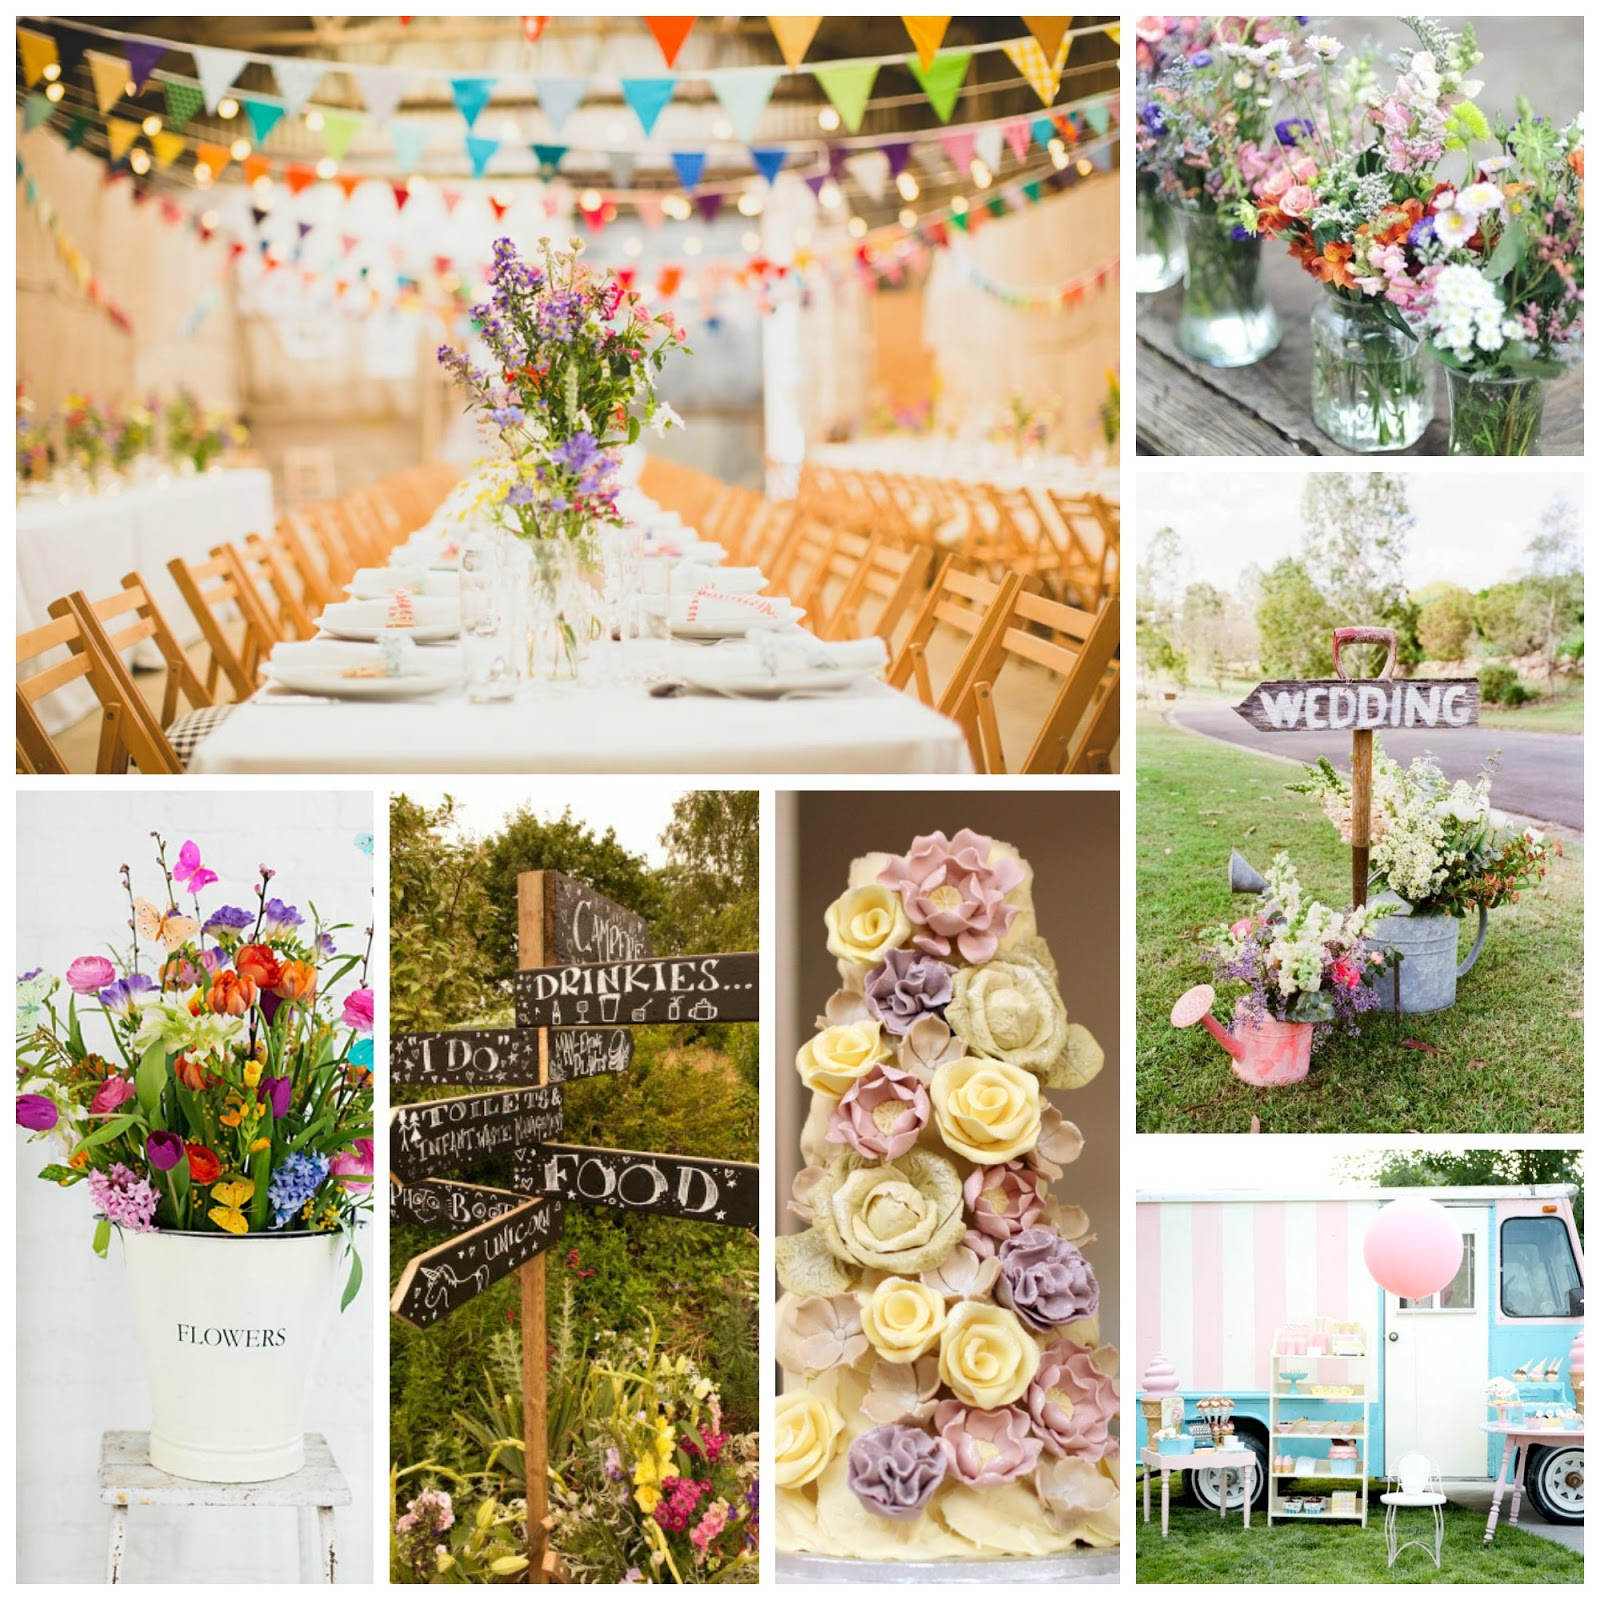 wedding mood inspiration board summer english wedding